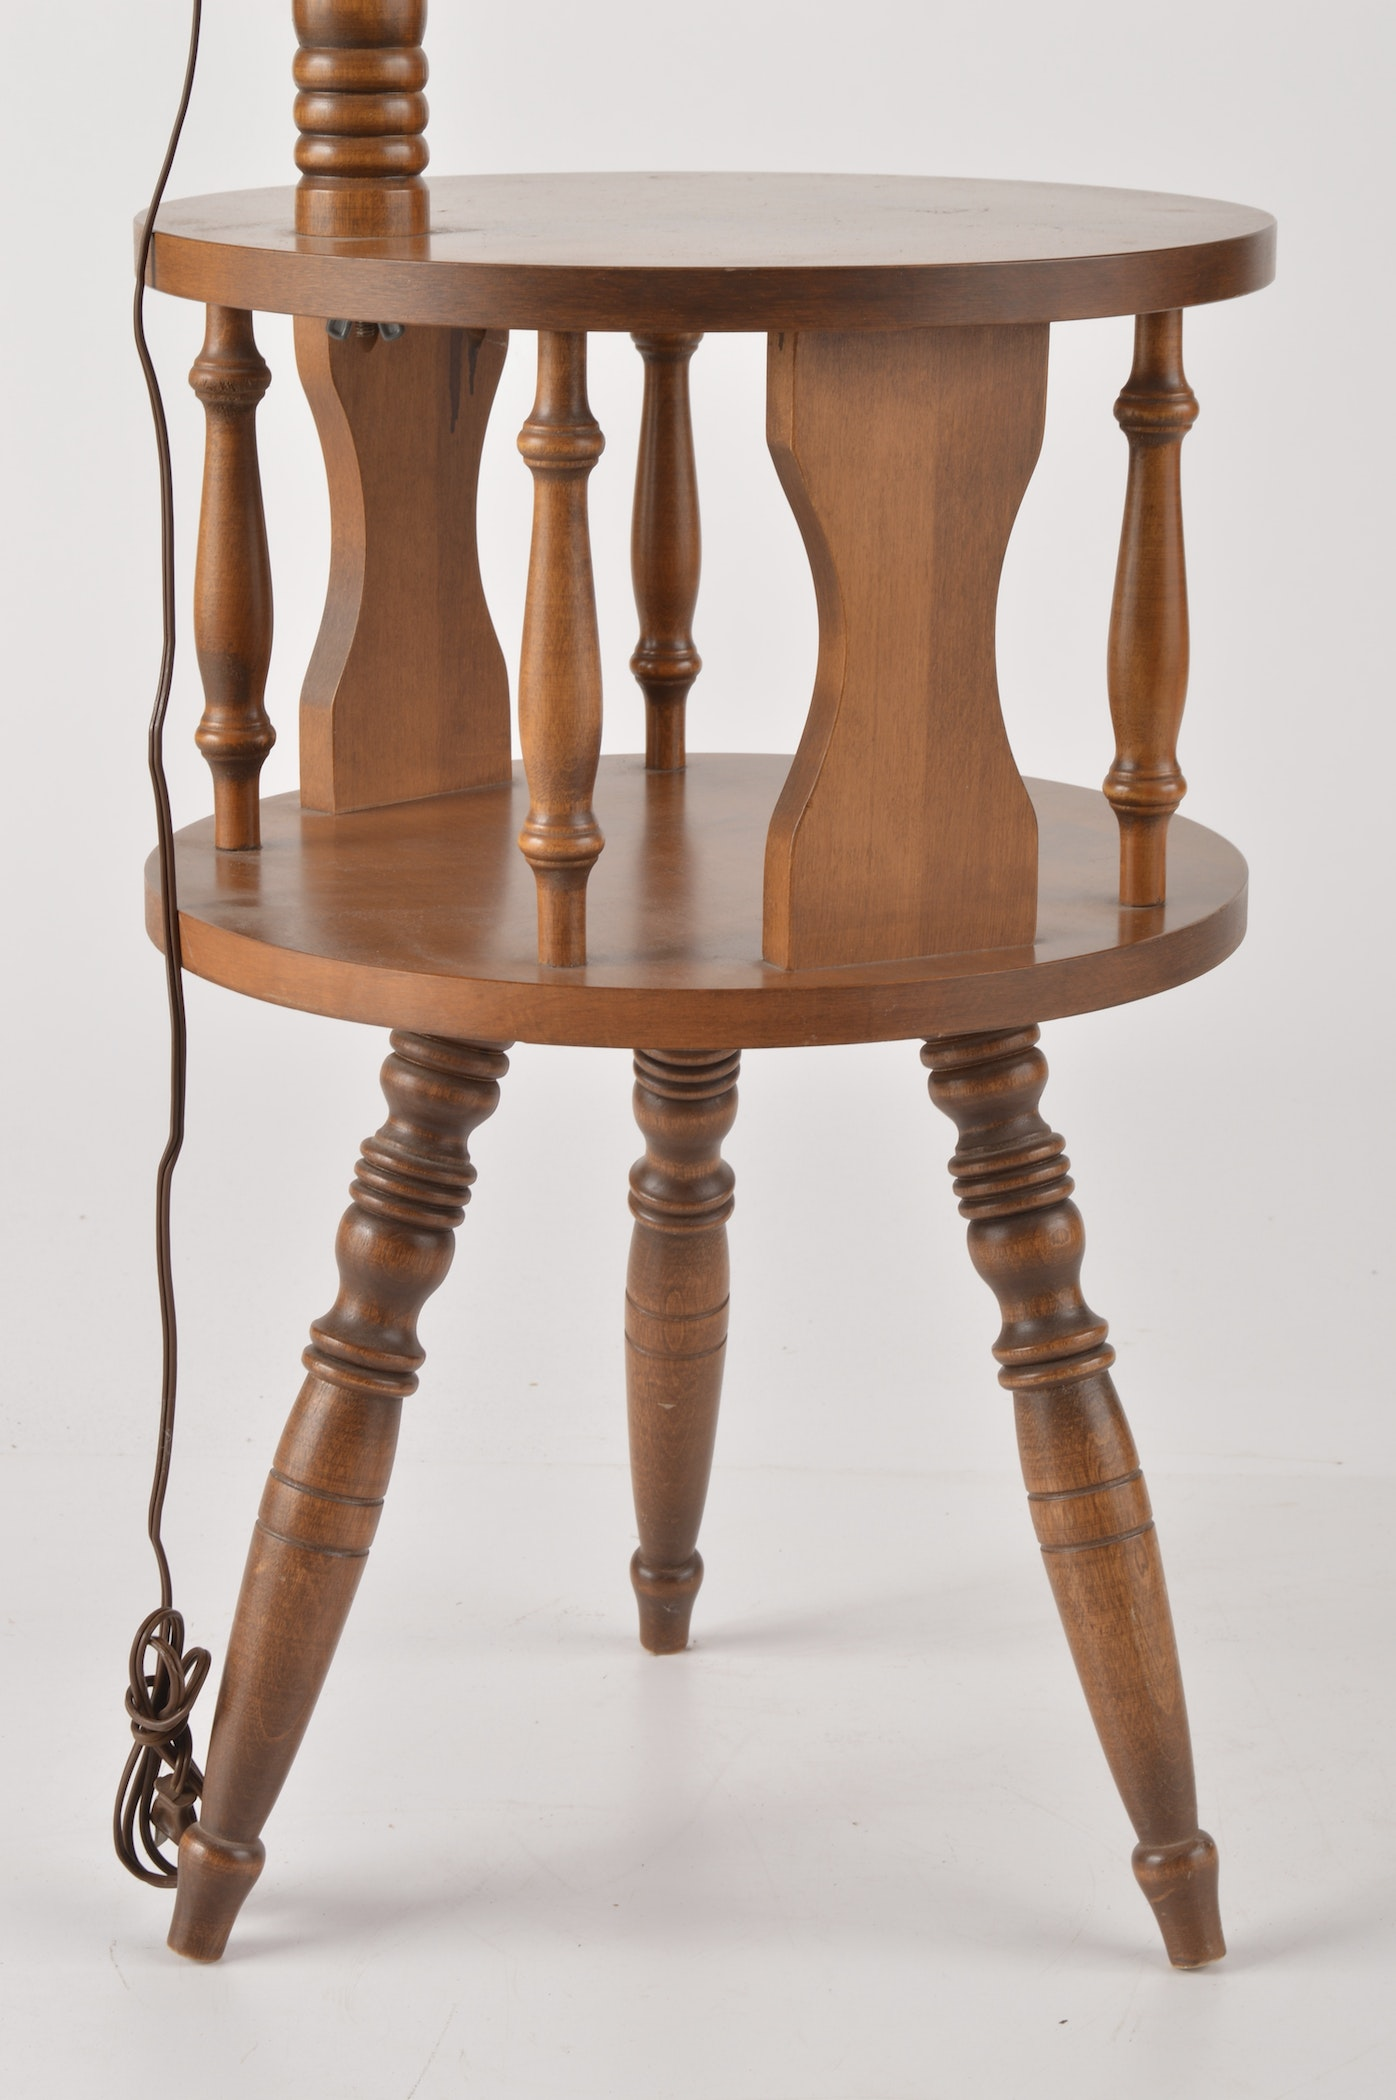 Two-Tier End Table with Built-In Lamp | EBTH